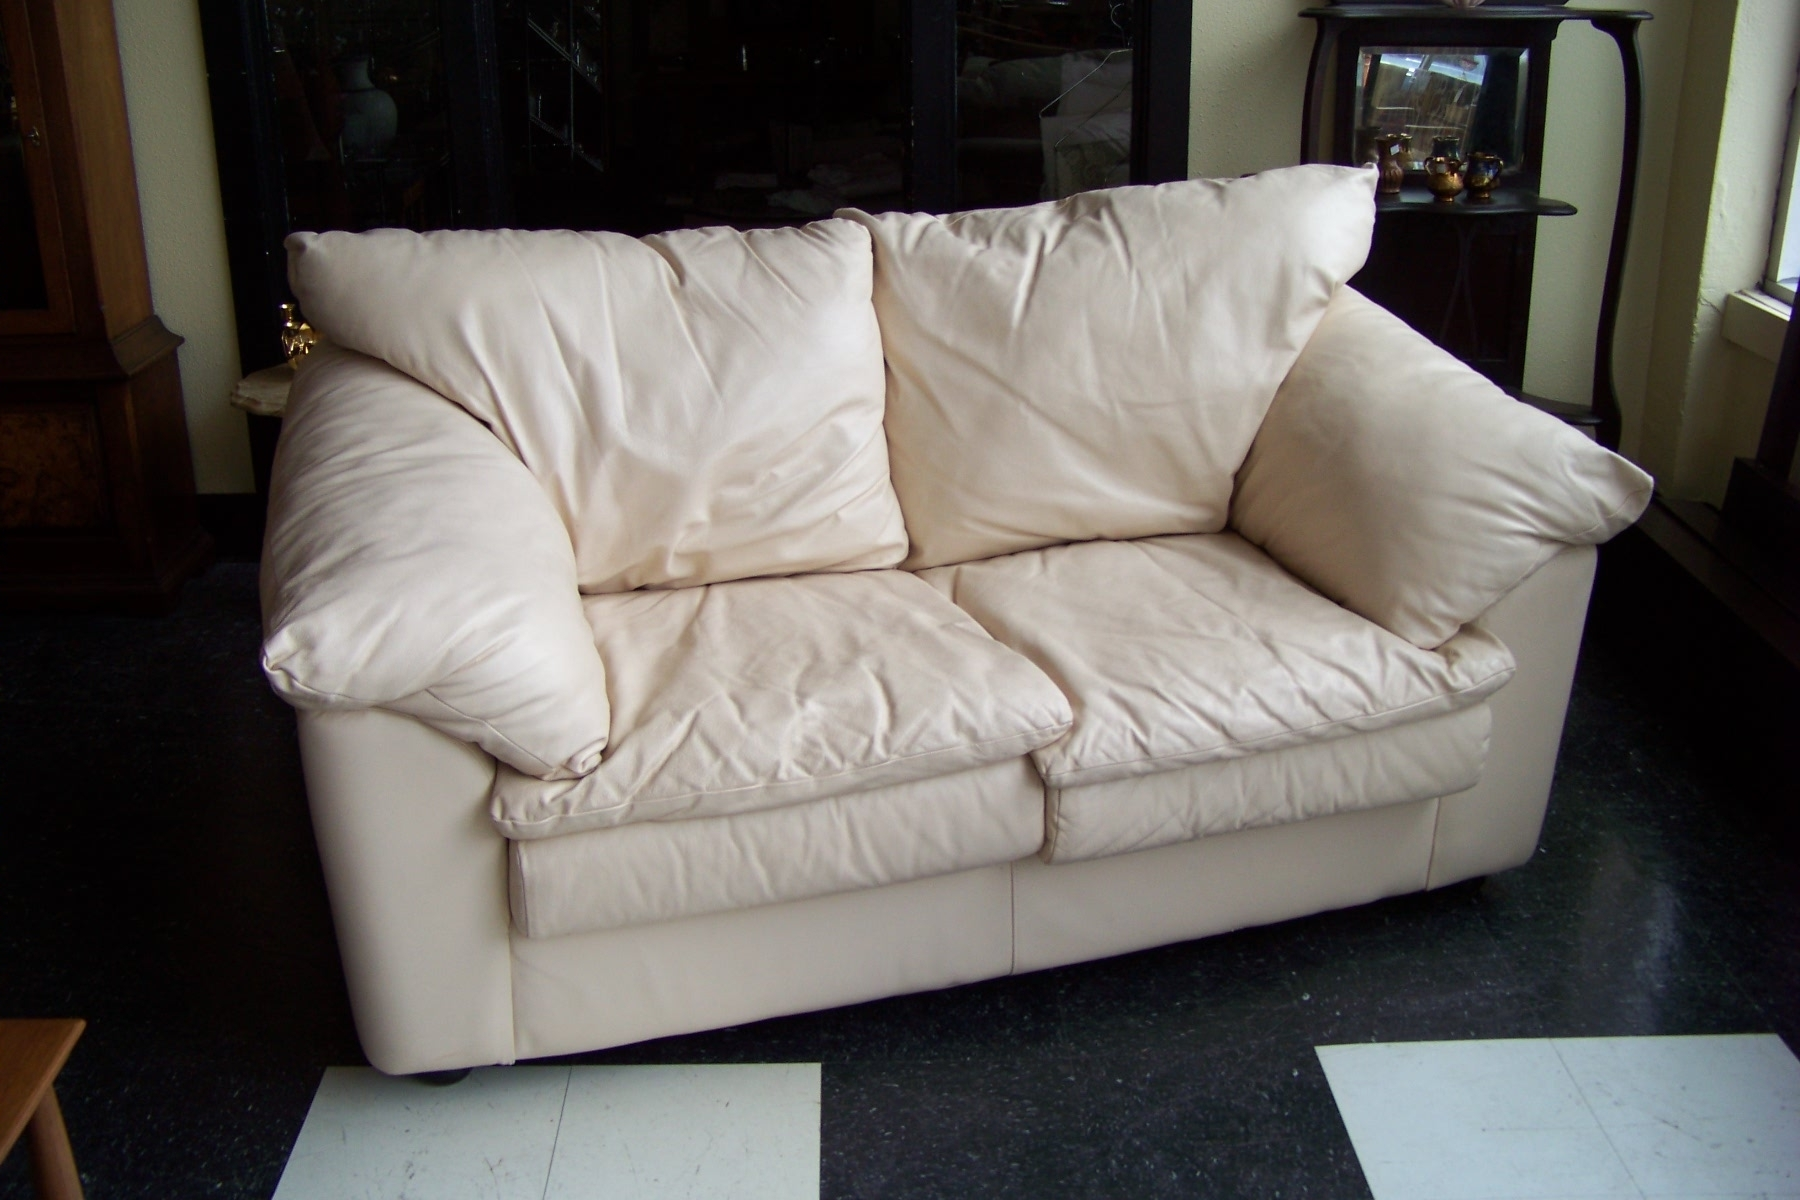 Cream Colored Sofas Regarding Well Liked Articles With Cream Colored Leather Sofa Set Tag Couch Camel (View 7 of 15)